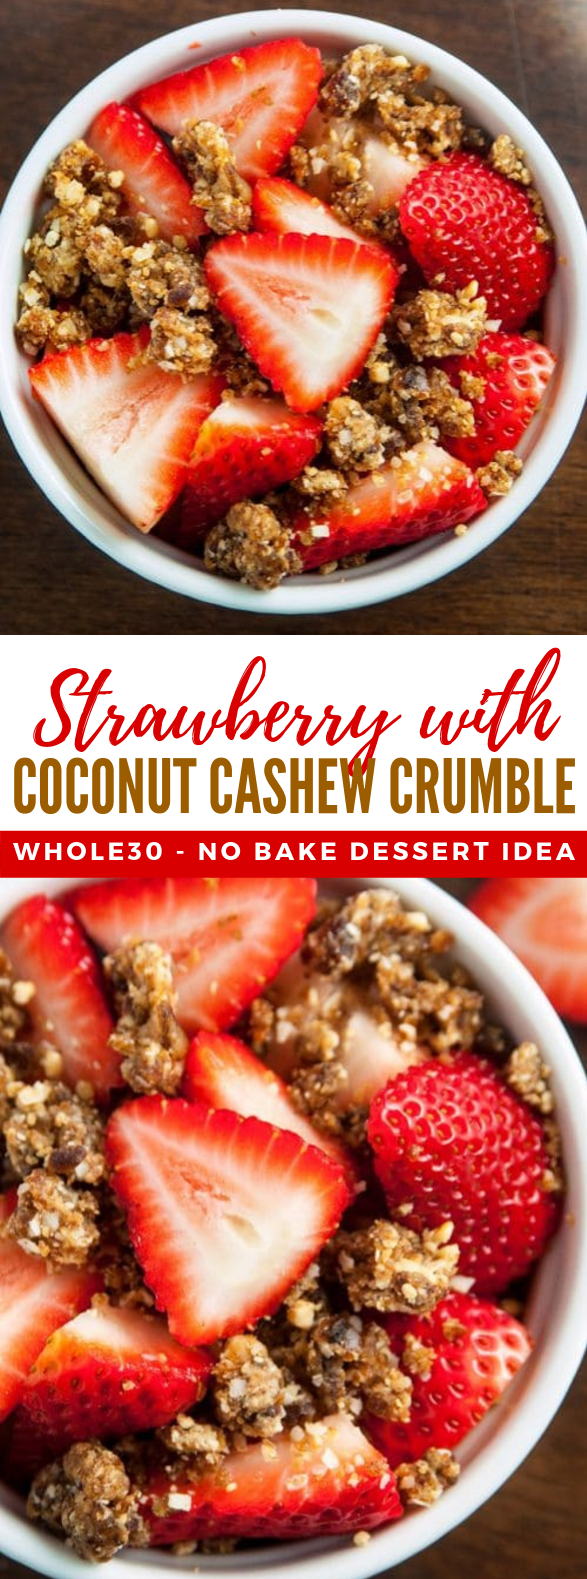 STRAWBERRIES WITH COCONUT CASHEW CRUMBLE  #desserts #whole30